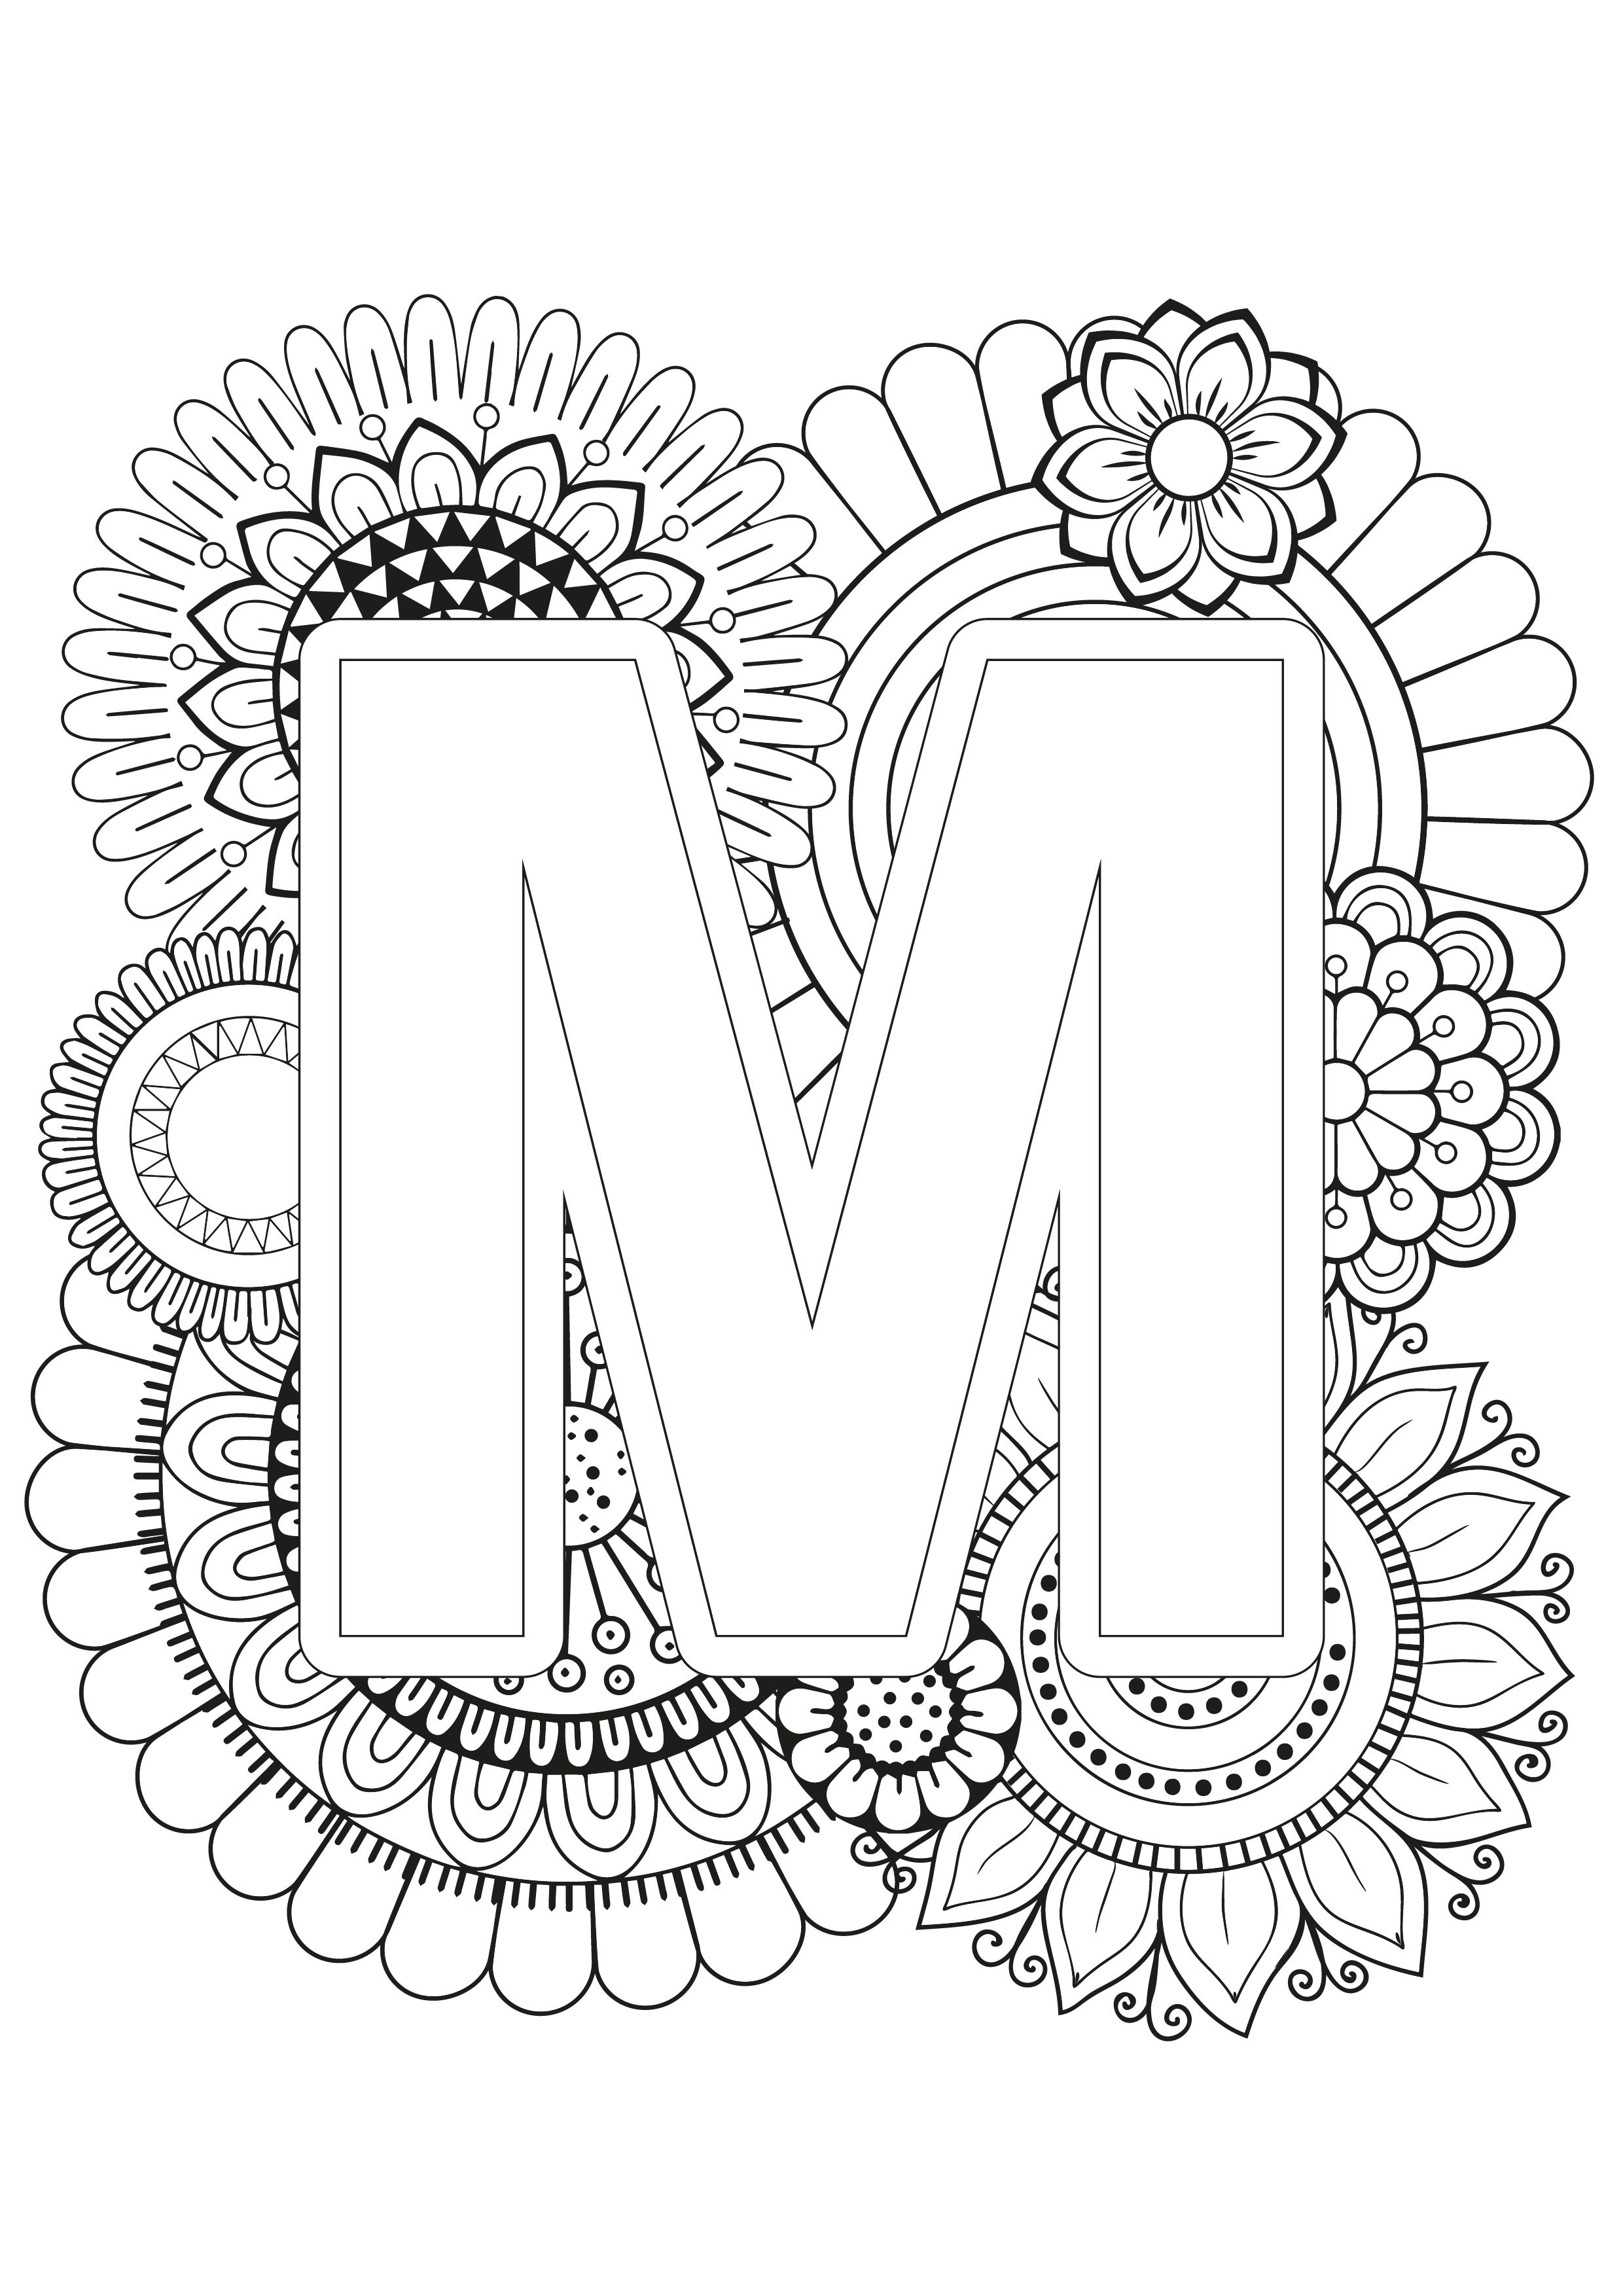 Mindfulness Coloring Page Alphabet Coloring Letters Alphabet Coloring Pages Printable Coloring Pages